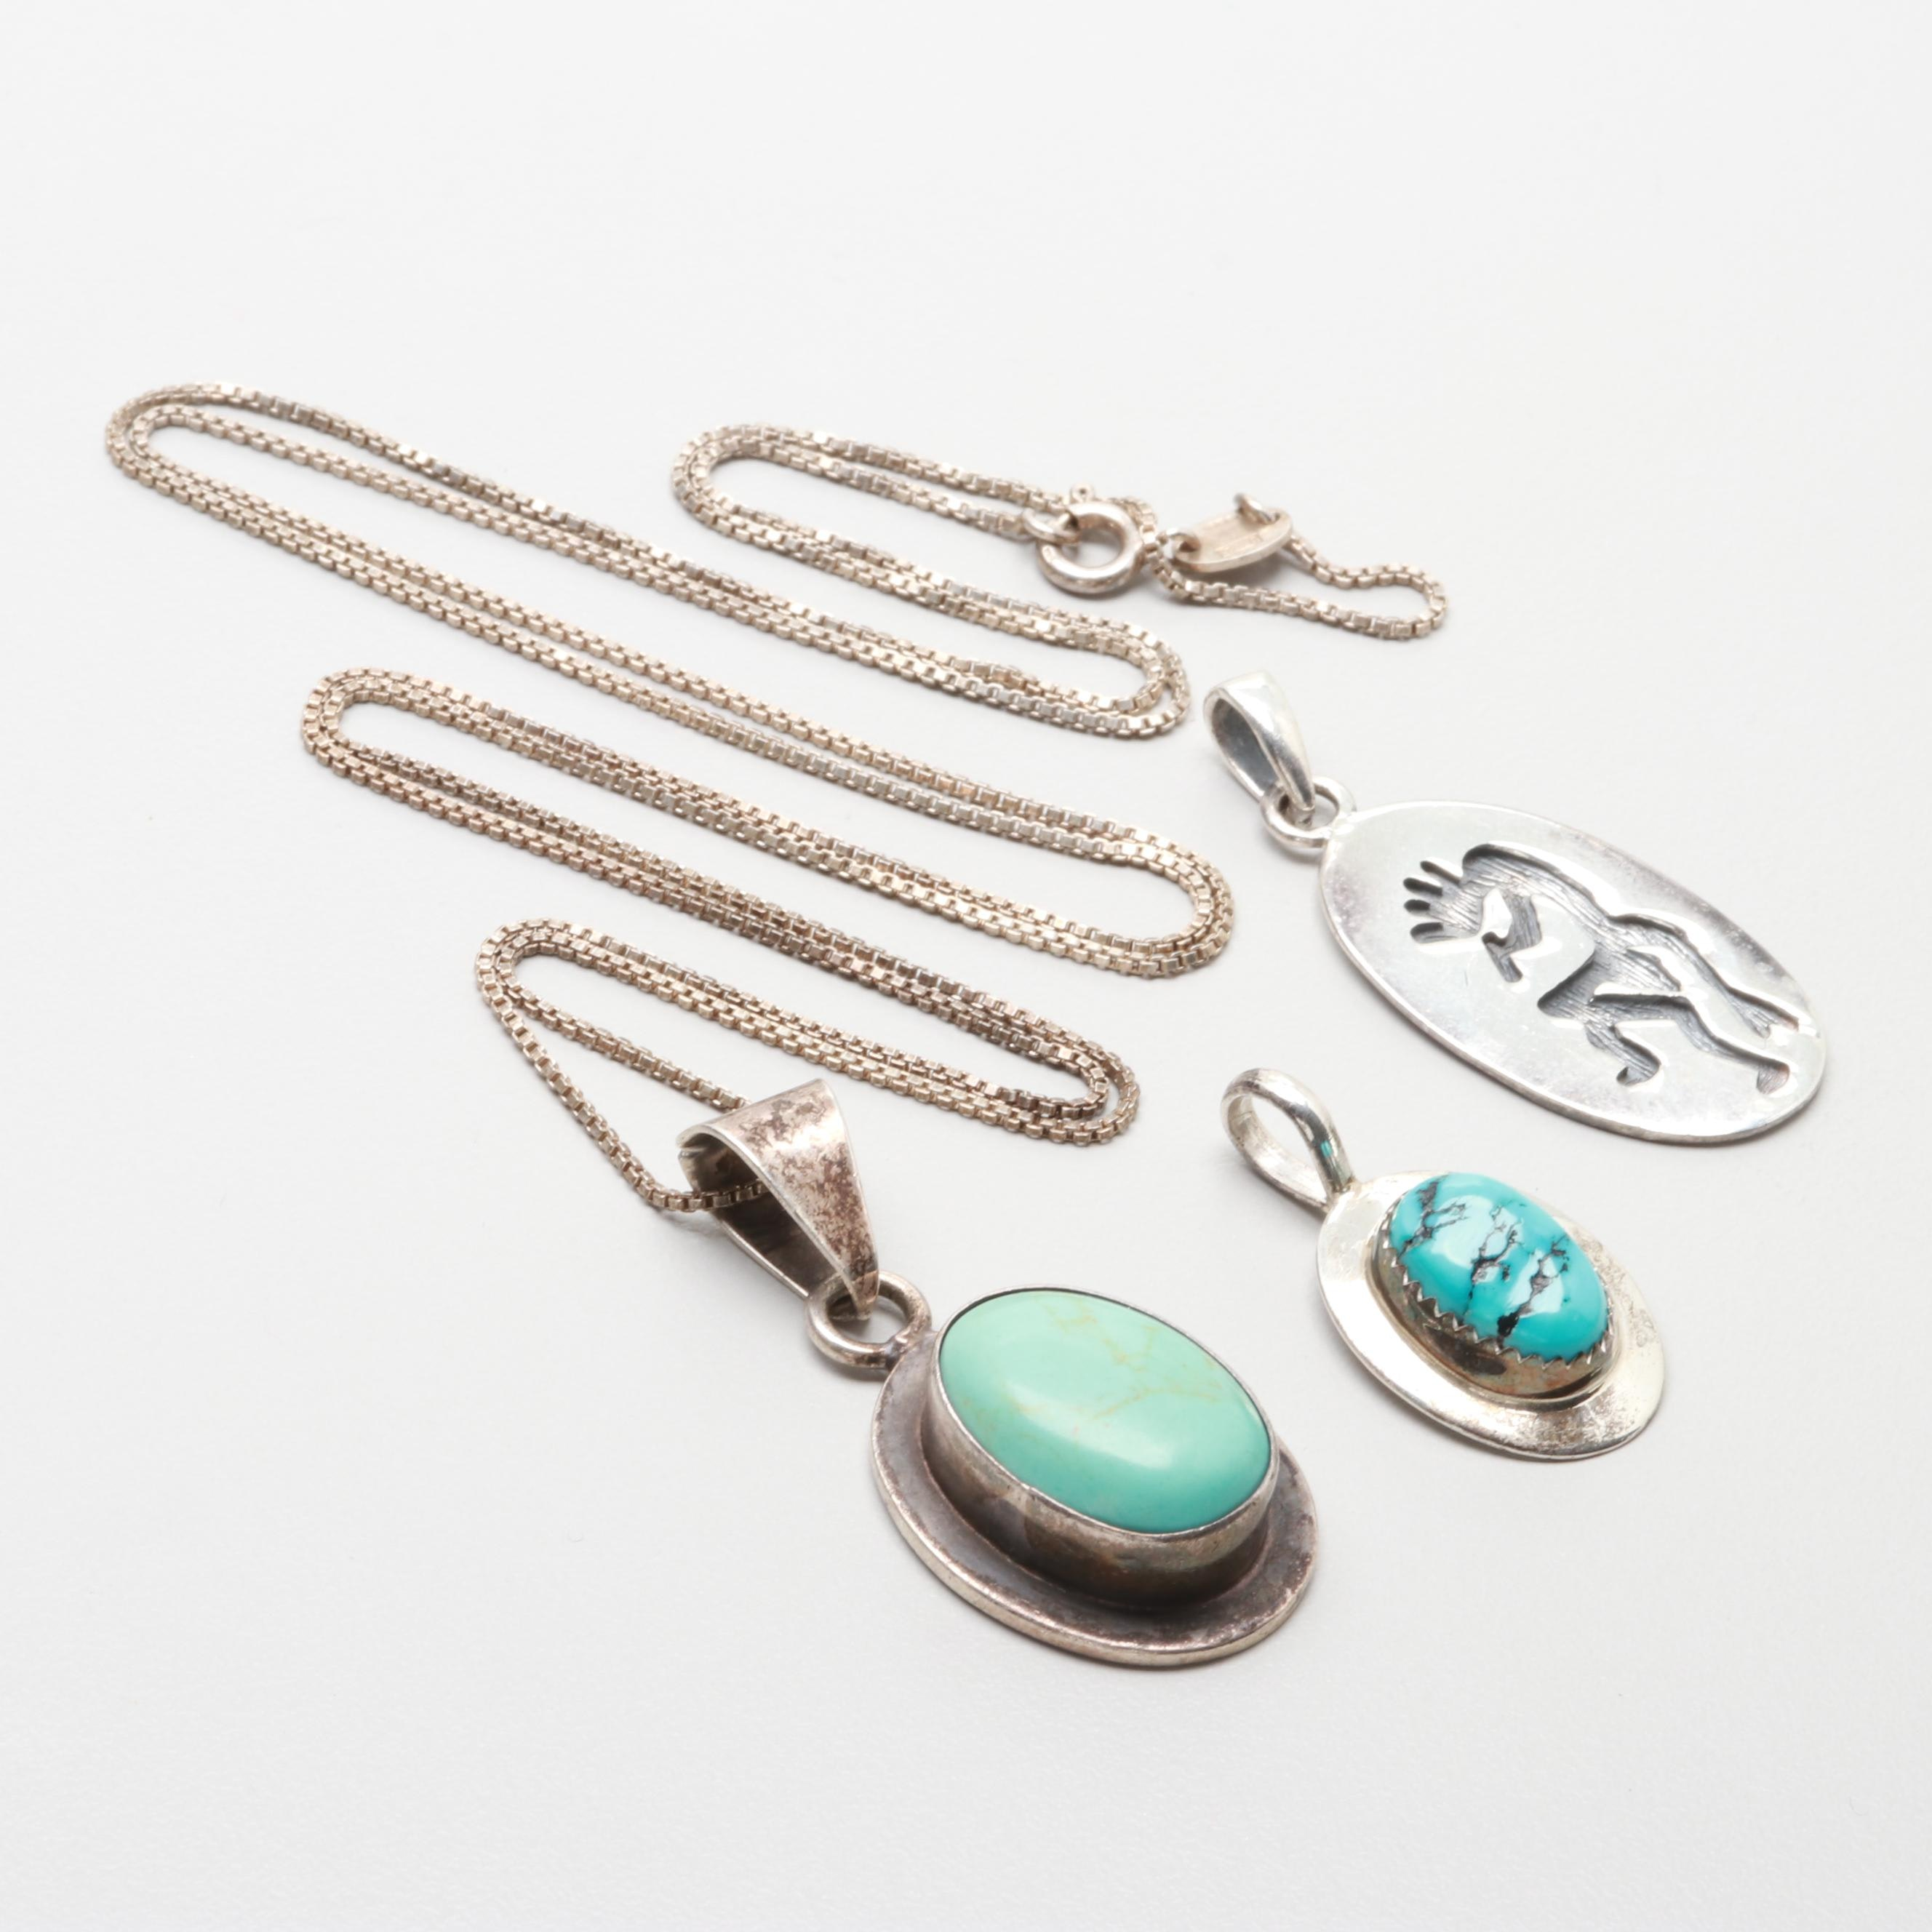 Sterling Silver Kokopelli and Turquoise Pendants with Denna Platero